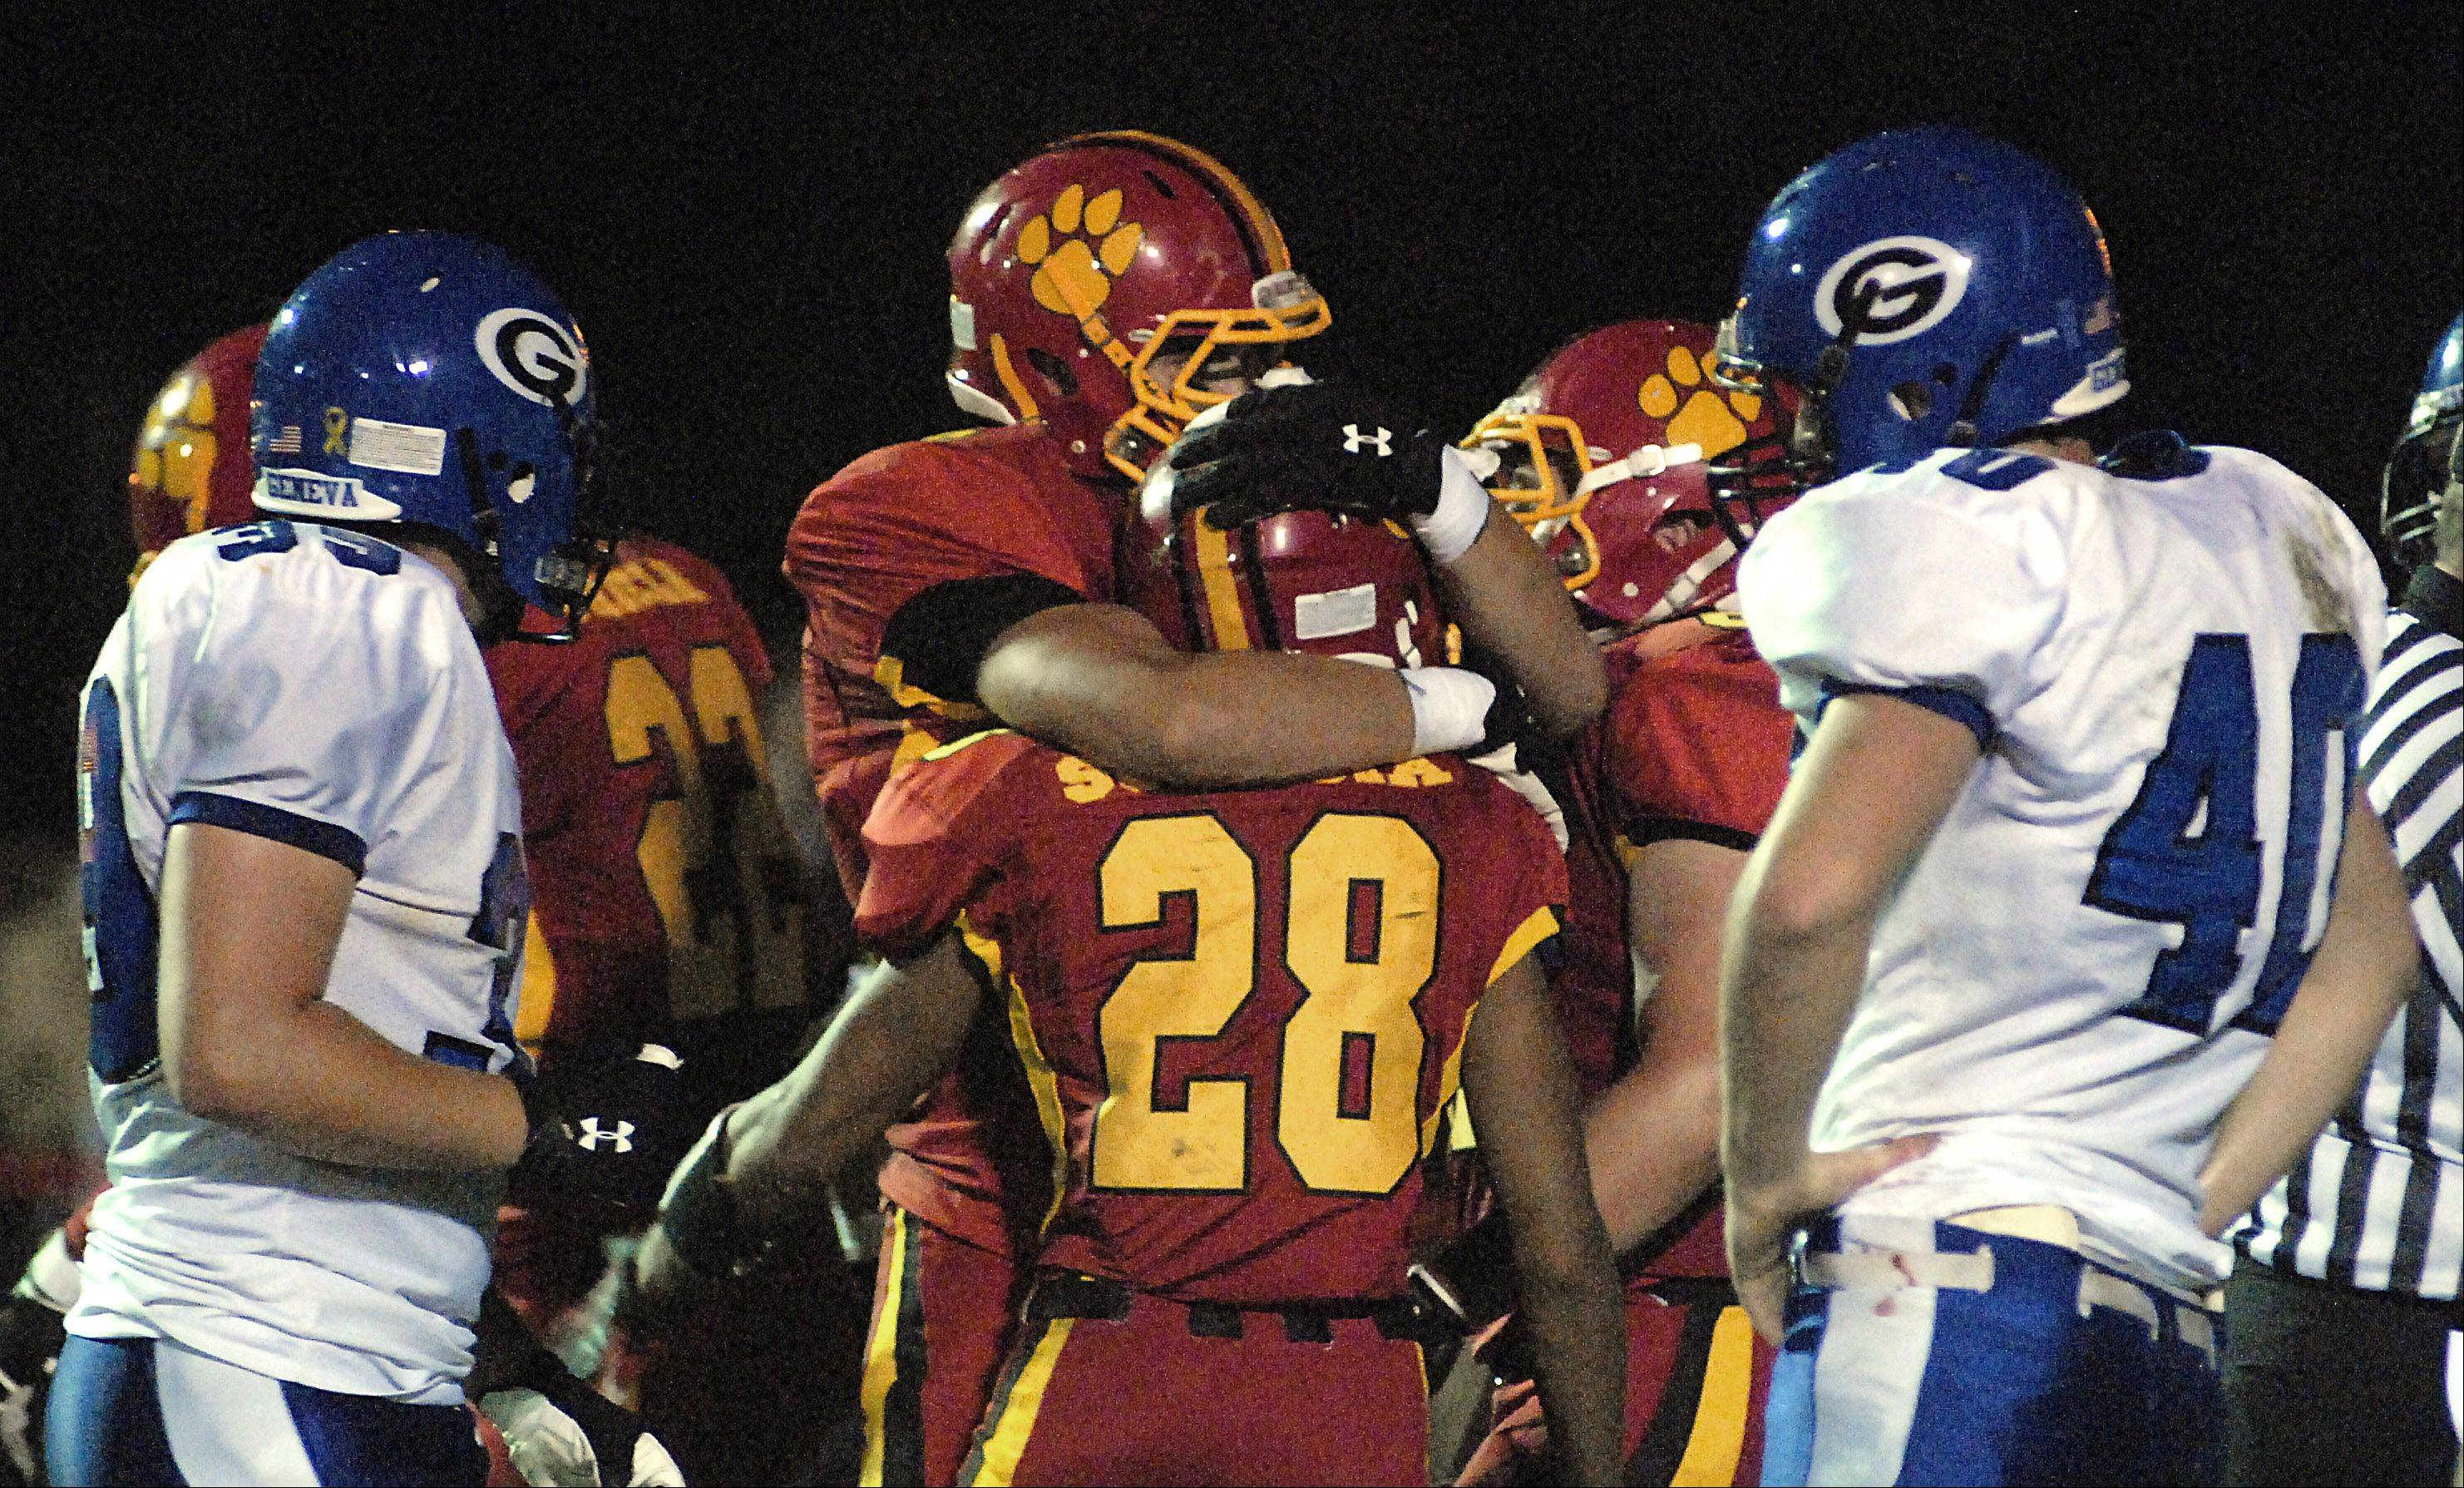 Batavia's Sebastian Vermaas congratulates Anthony Scaccia on a second quarter touchdown.